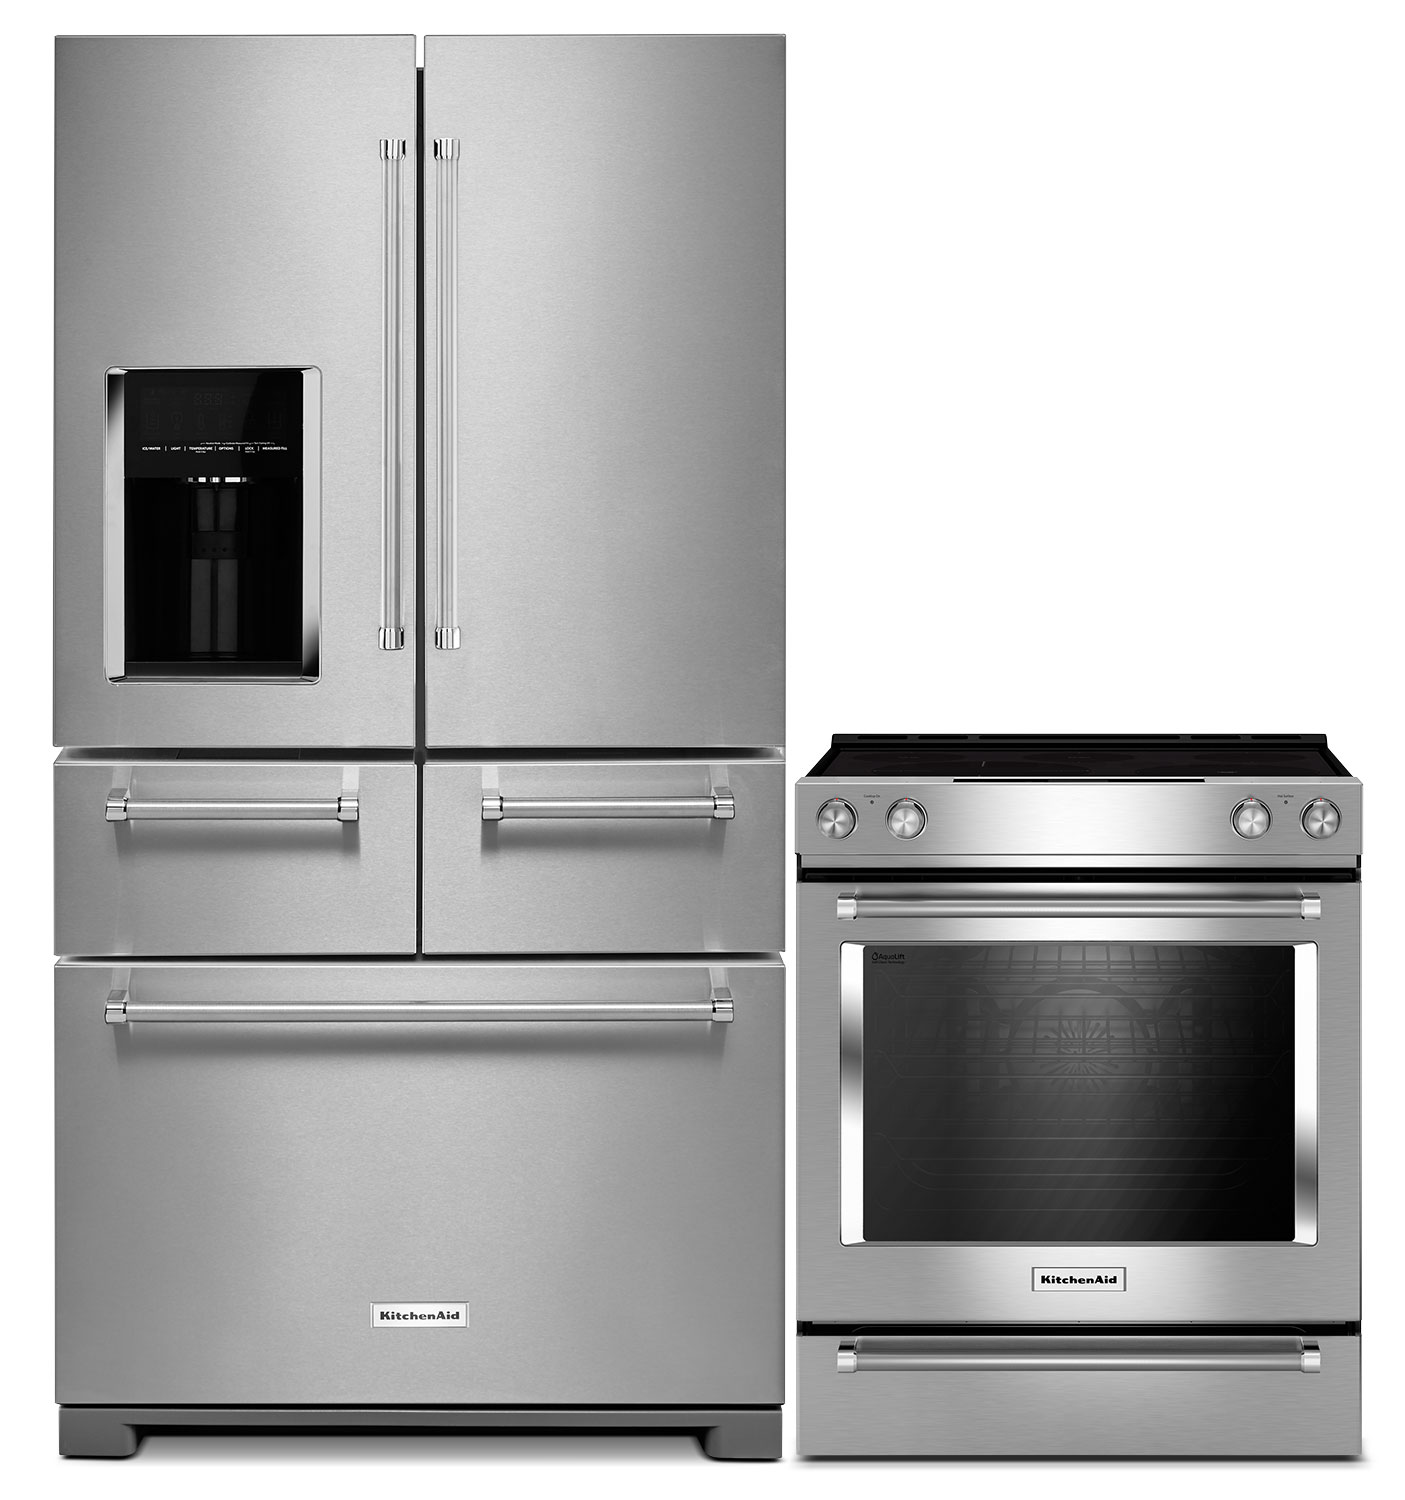 Refrigerators and Freezers - KitchenAid 25.8 Cu. Ft. 5-Door Refrigerator and 6.4 Cu. Ft. Electric Range – Stainless Steel